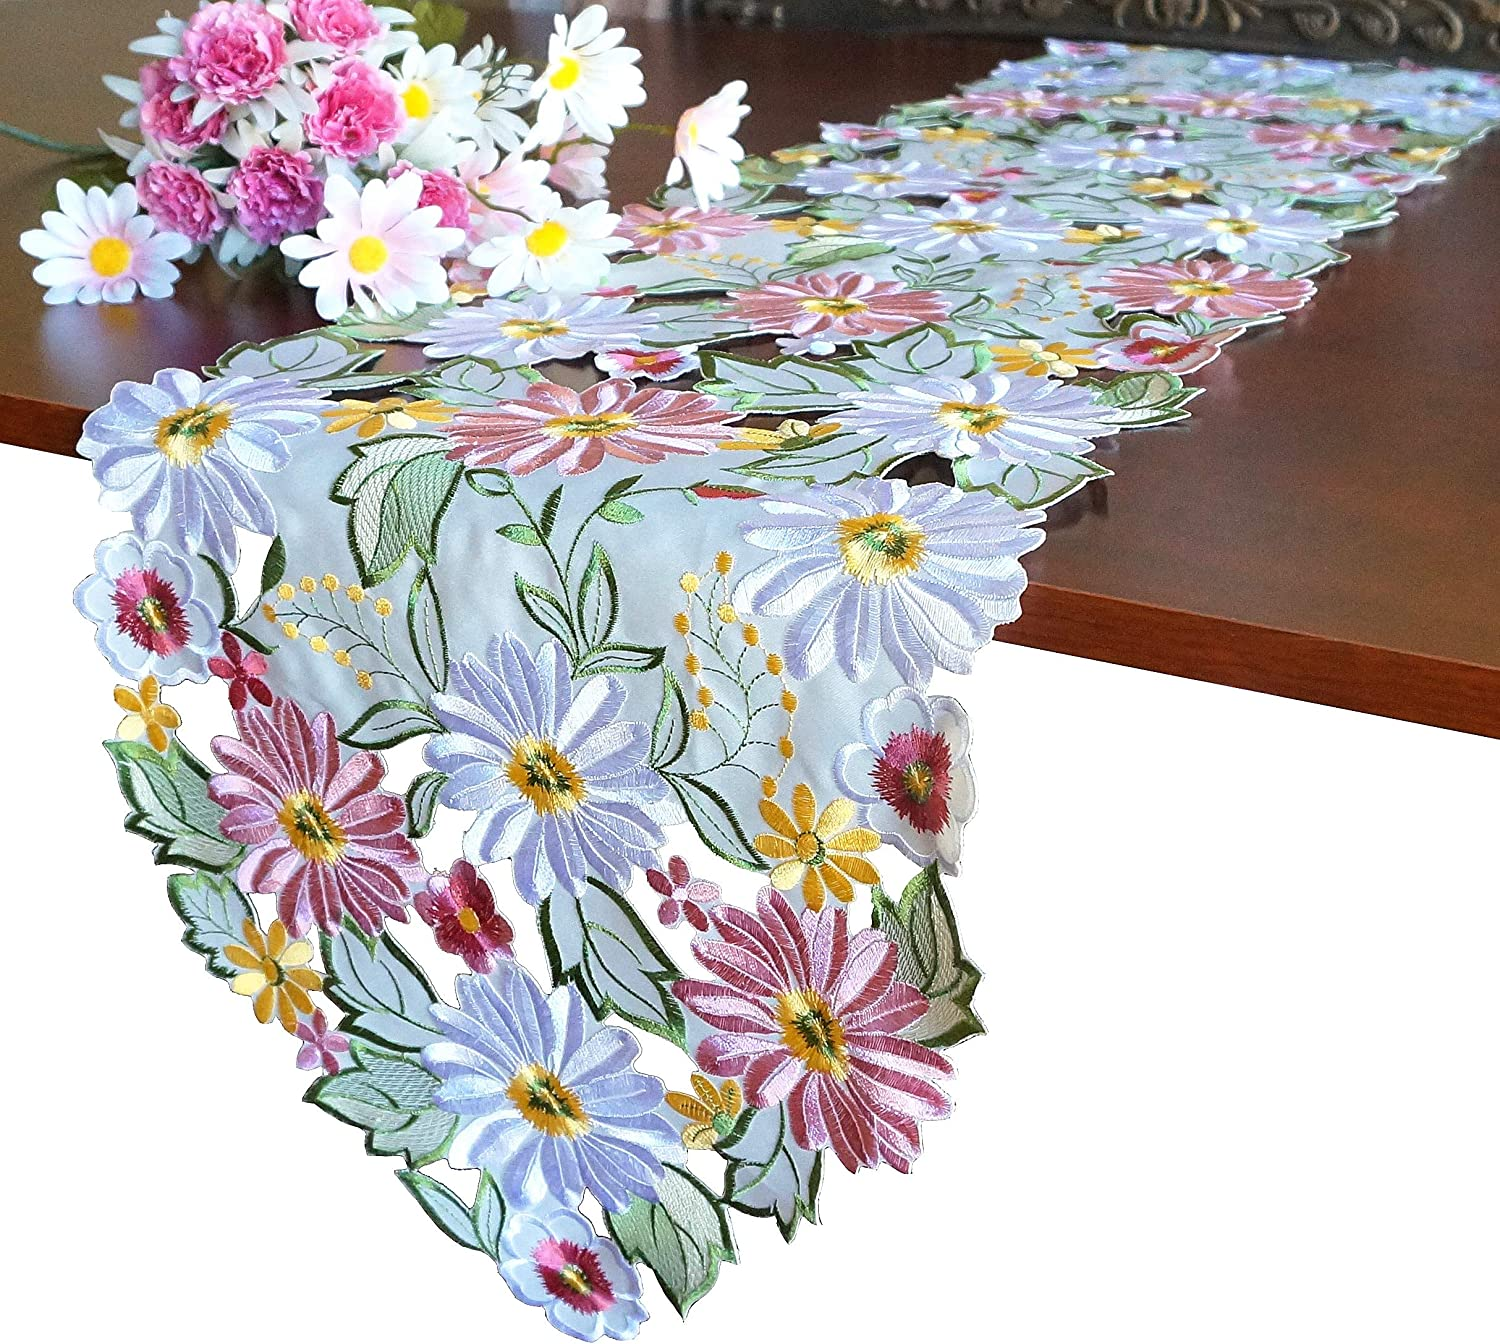 "GRANDDECO Embroidered Flowery Table Runner,Applique Floral Daisy Cutwork Embroidered Table Linen, Home Kitchen Dining Tabletop Decoration, Runner 13""×68"" (Runner 13""×68""(33x172cm), Spring Color): Home & Kitchen"